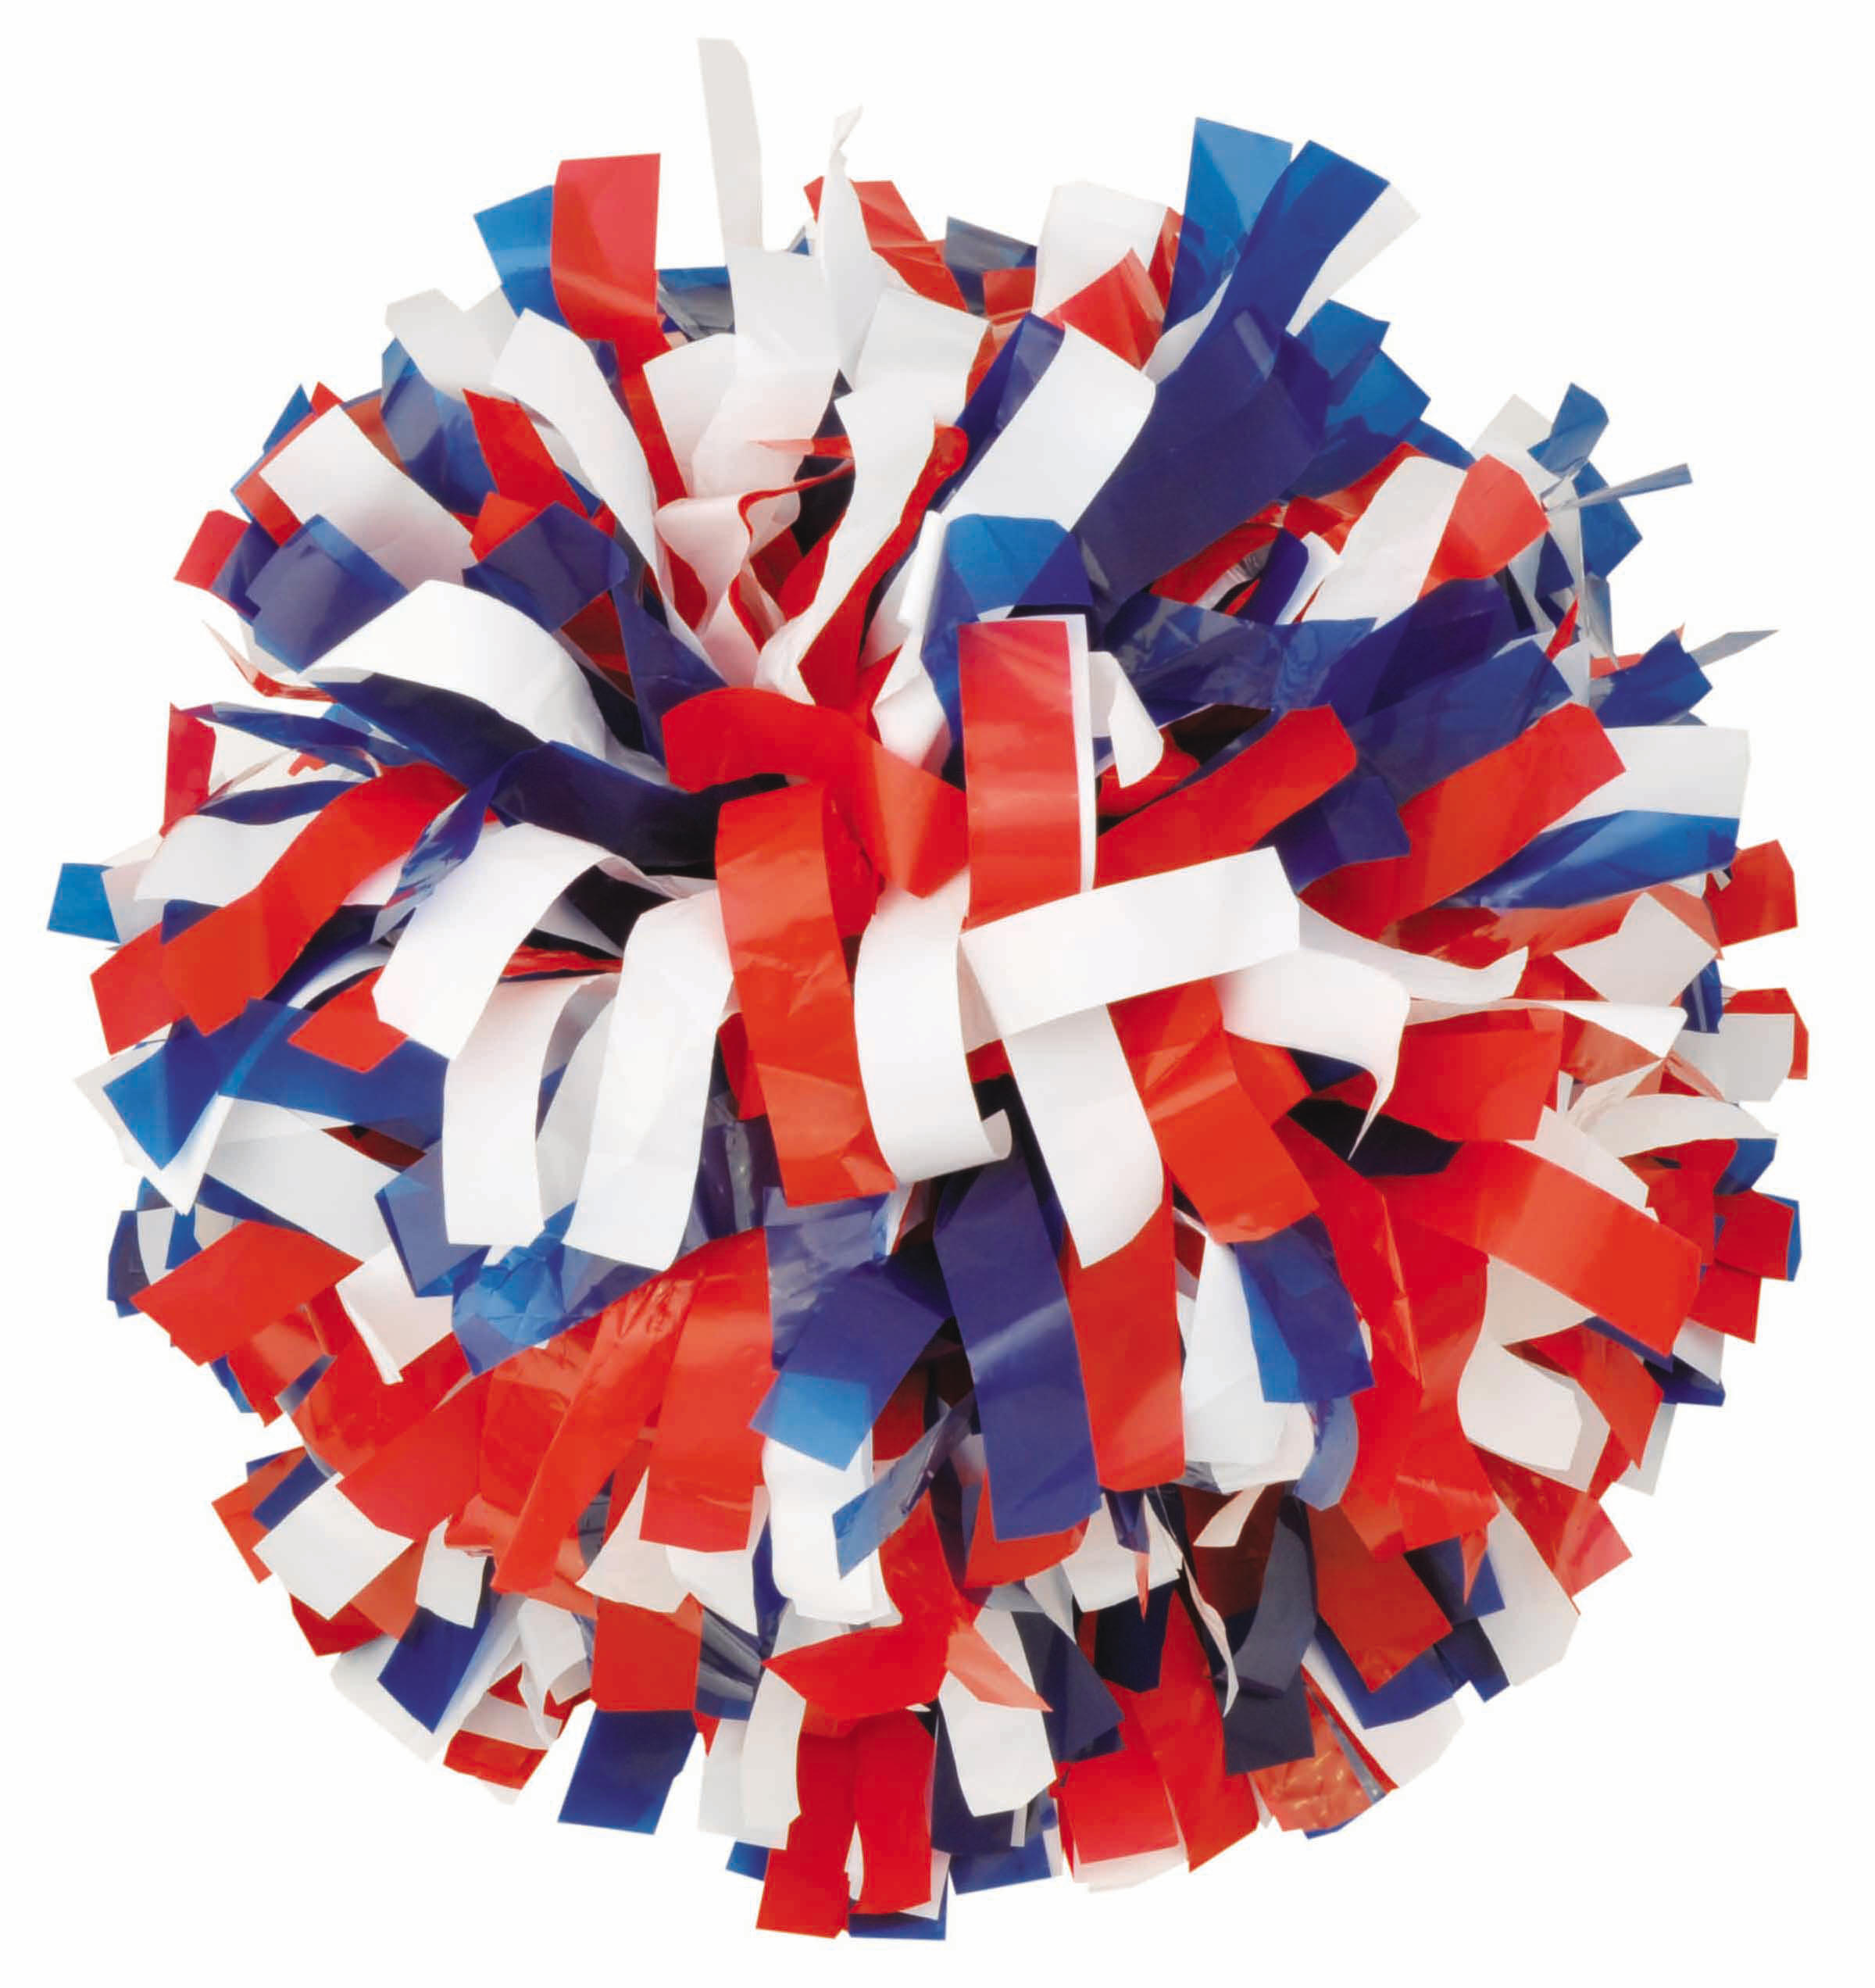 Cheerleader clipart red blue. Cheerleading pom poms group